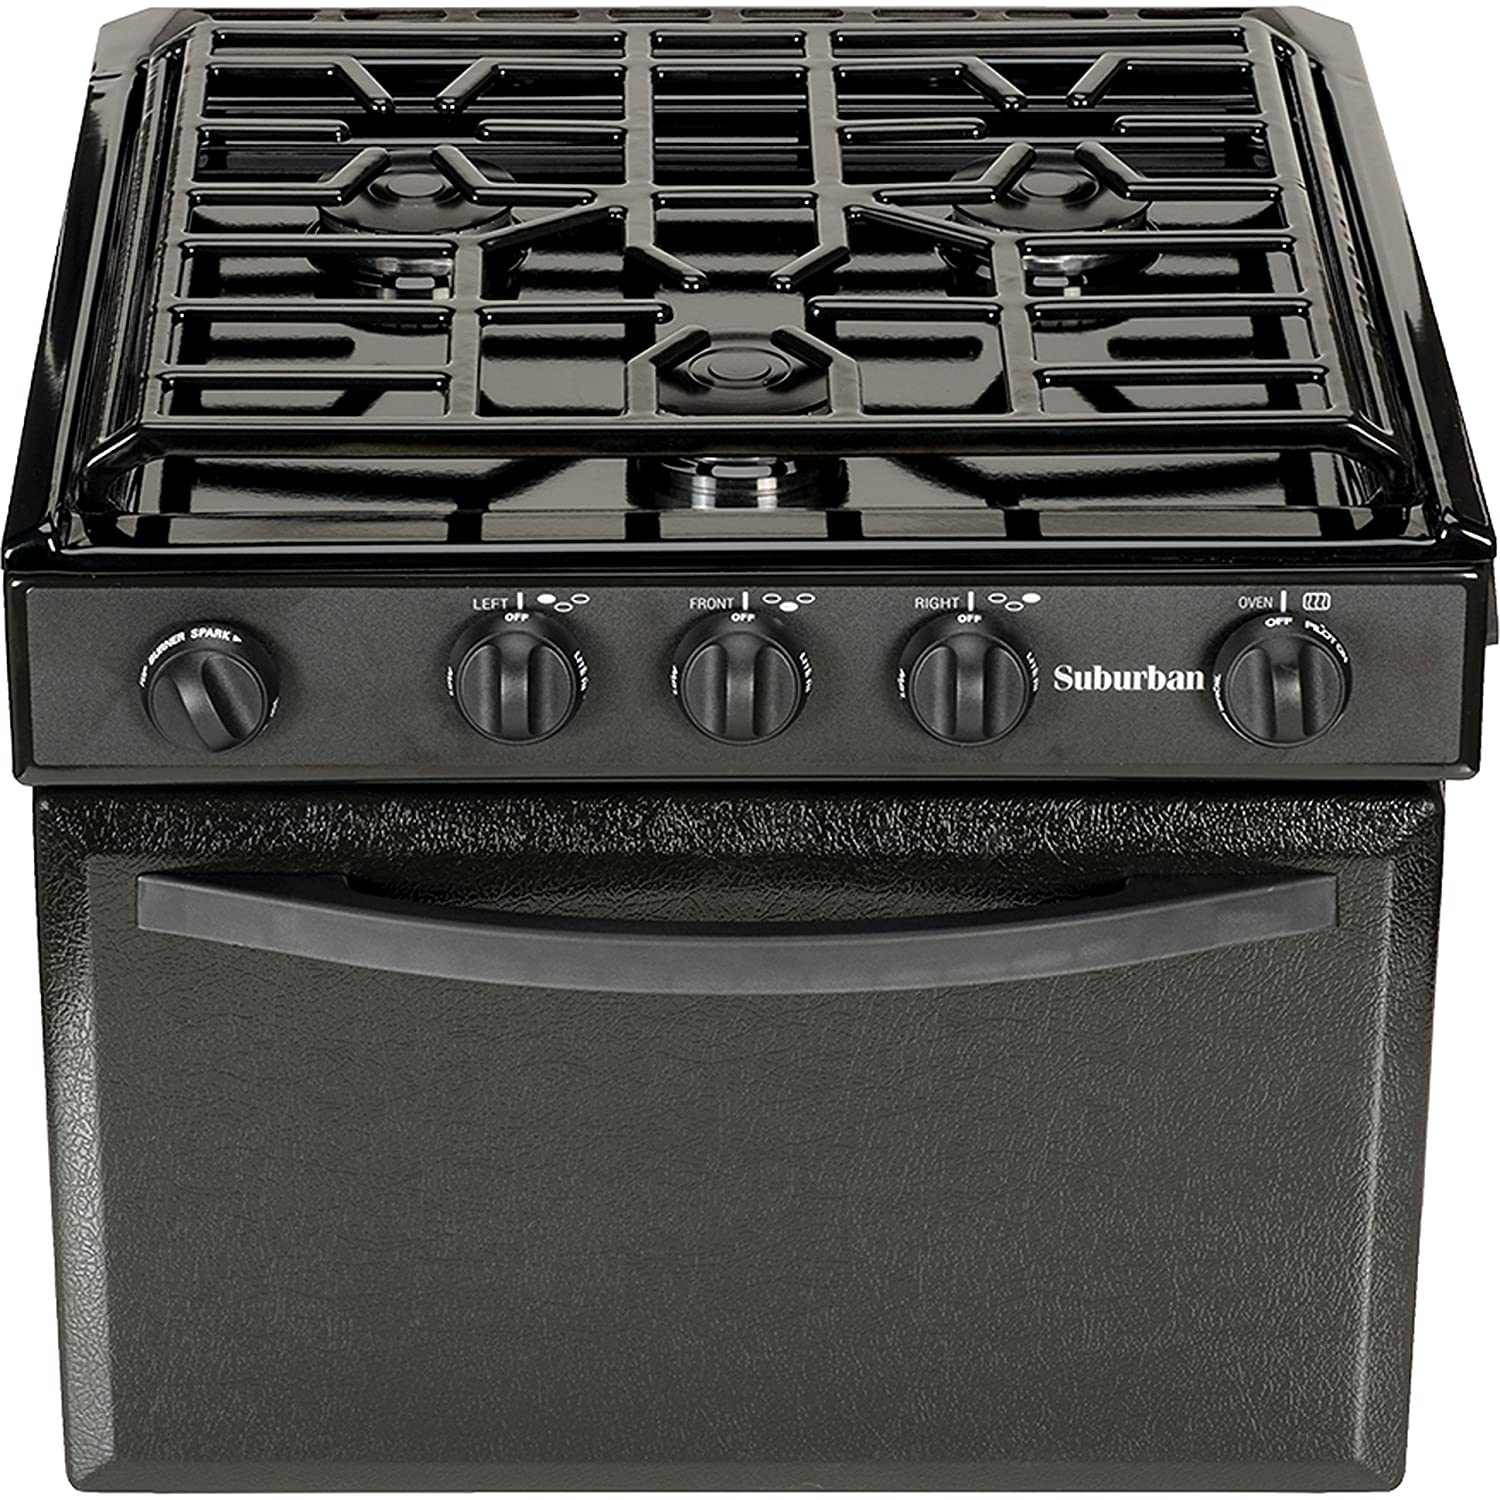 Suburban 3206A Gas Range with Conventional Burners - Black w/Piezo Ignition, 17""